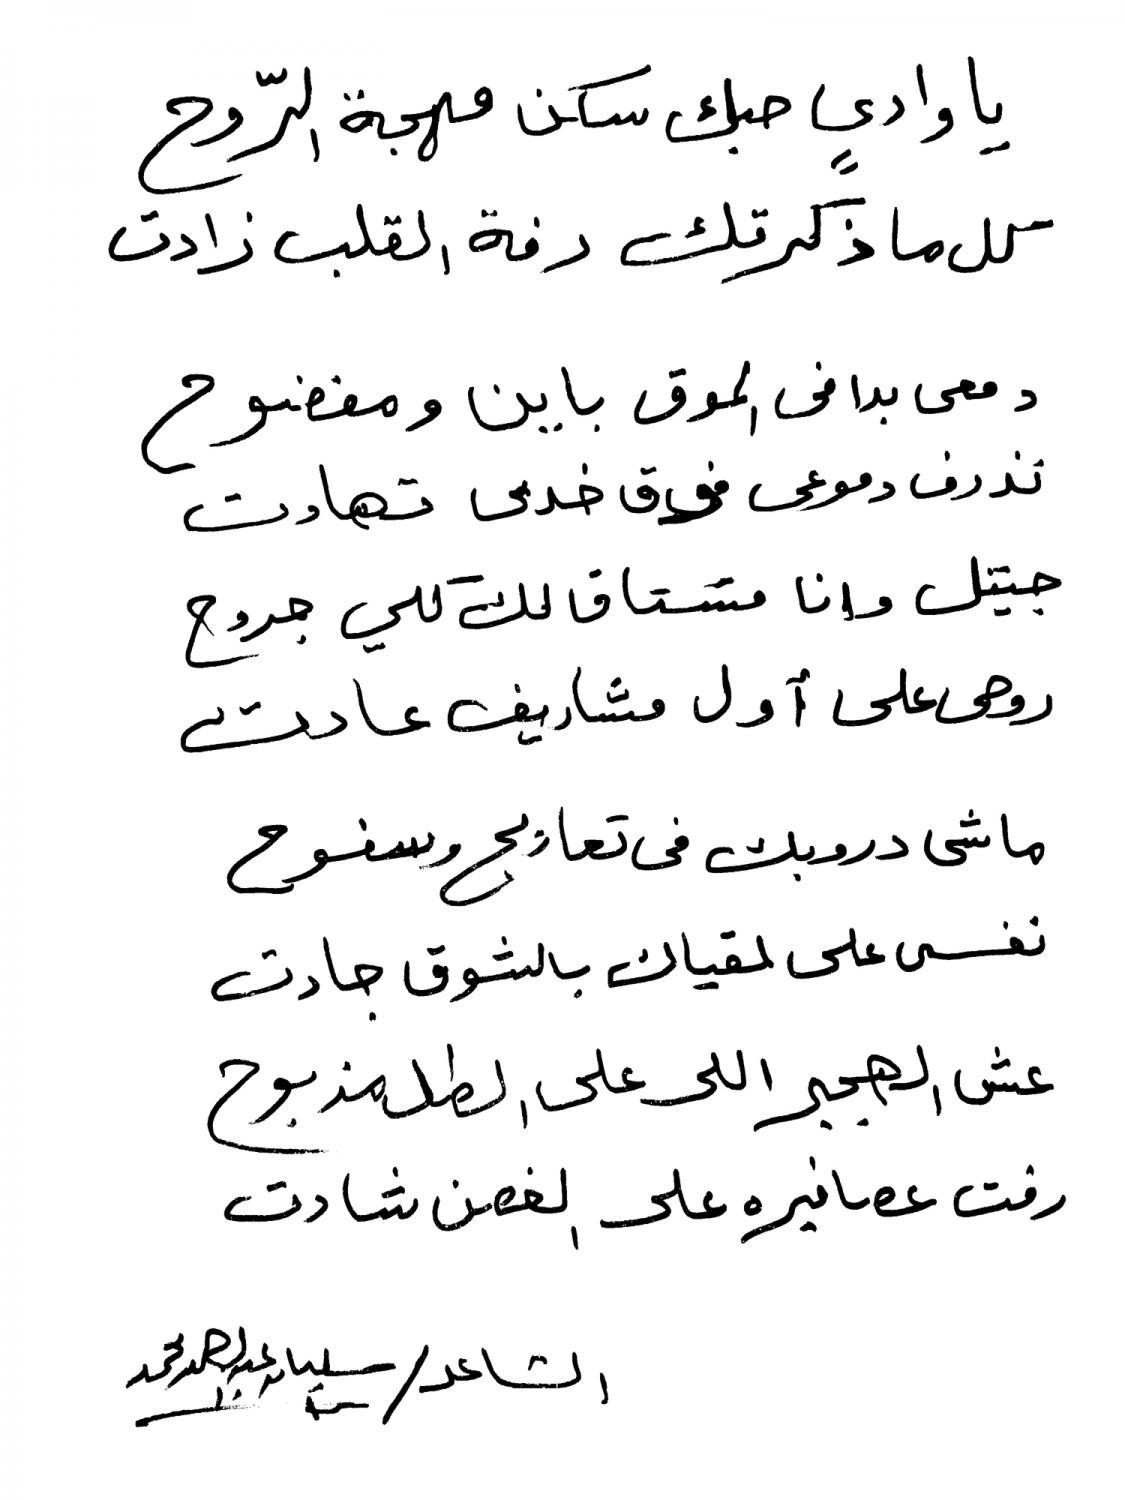 Oh valley, your love is a home for the soul's joy Whenever I see you my heart grows I come to you in longing full of pains My soul returns to me as I approach your grounds By Seliman Abdel Rahman